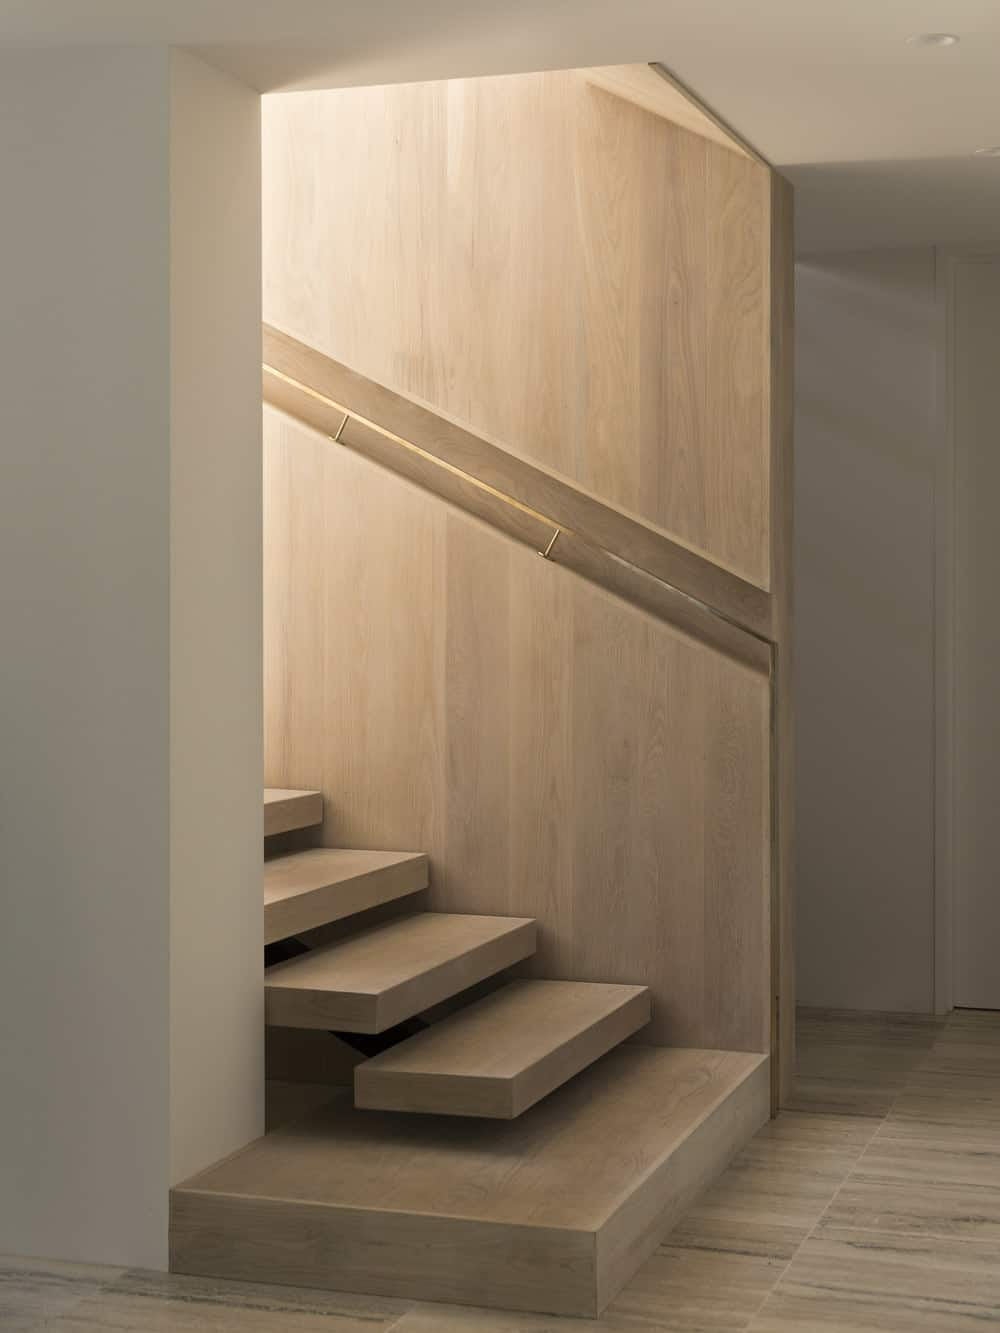 Floating staircase in the Herne Bay Hideaway designed by Lloyd Hartley Architects.